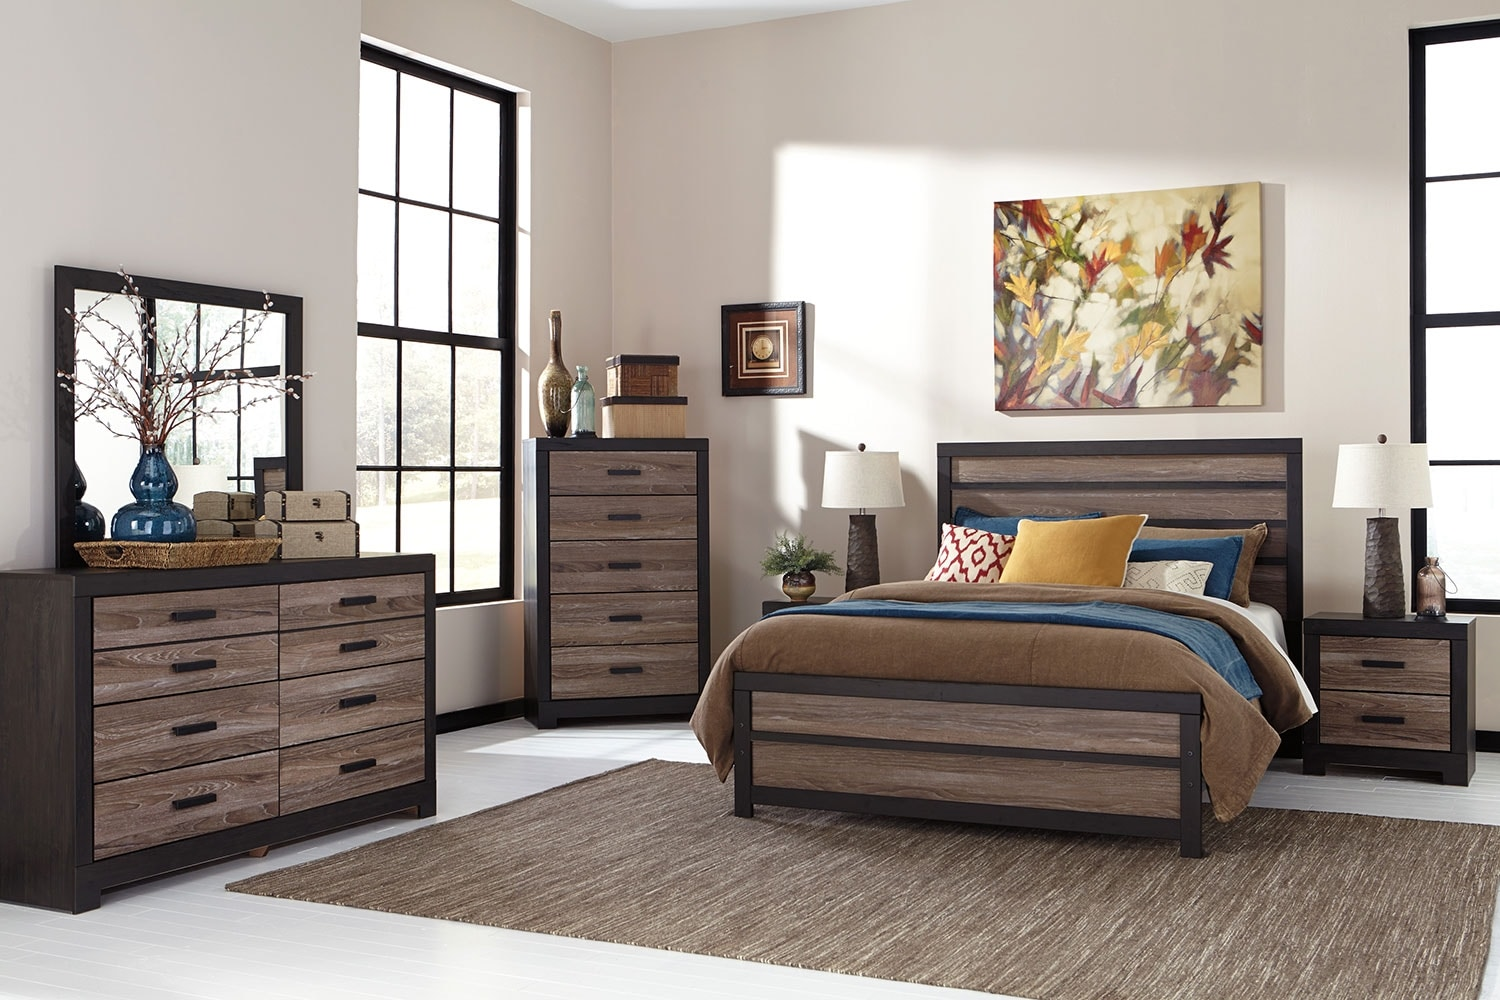 Bedroom Furniture - Harlinton 8-Piece Queen Bedroom Package